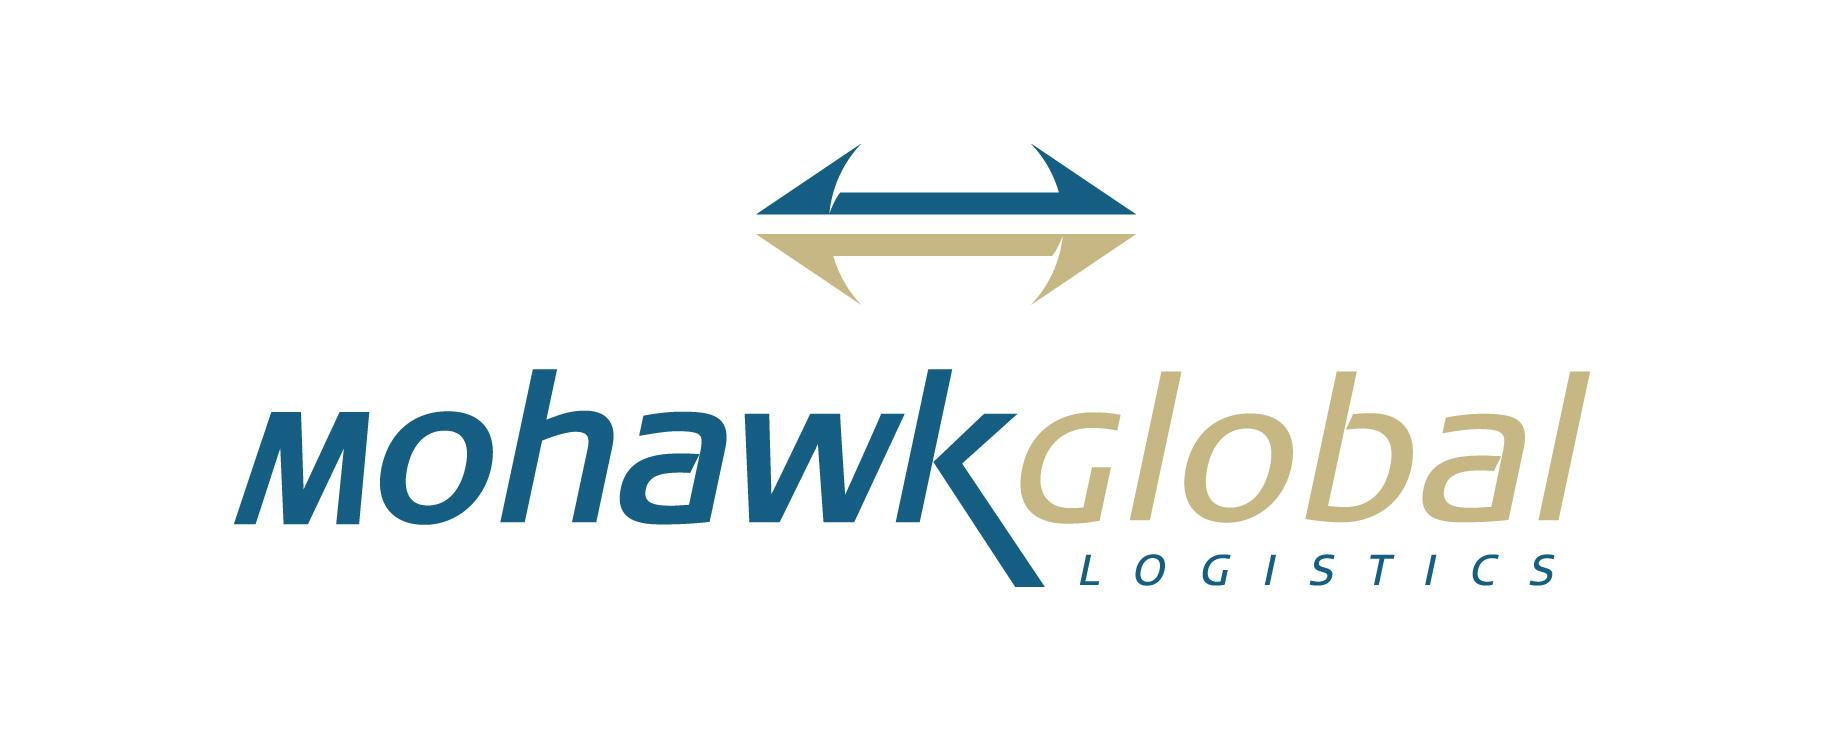 Mohawk Global Logistics Corp